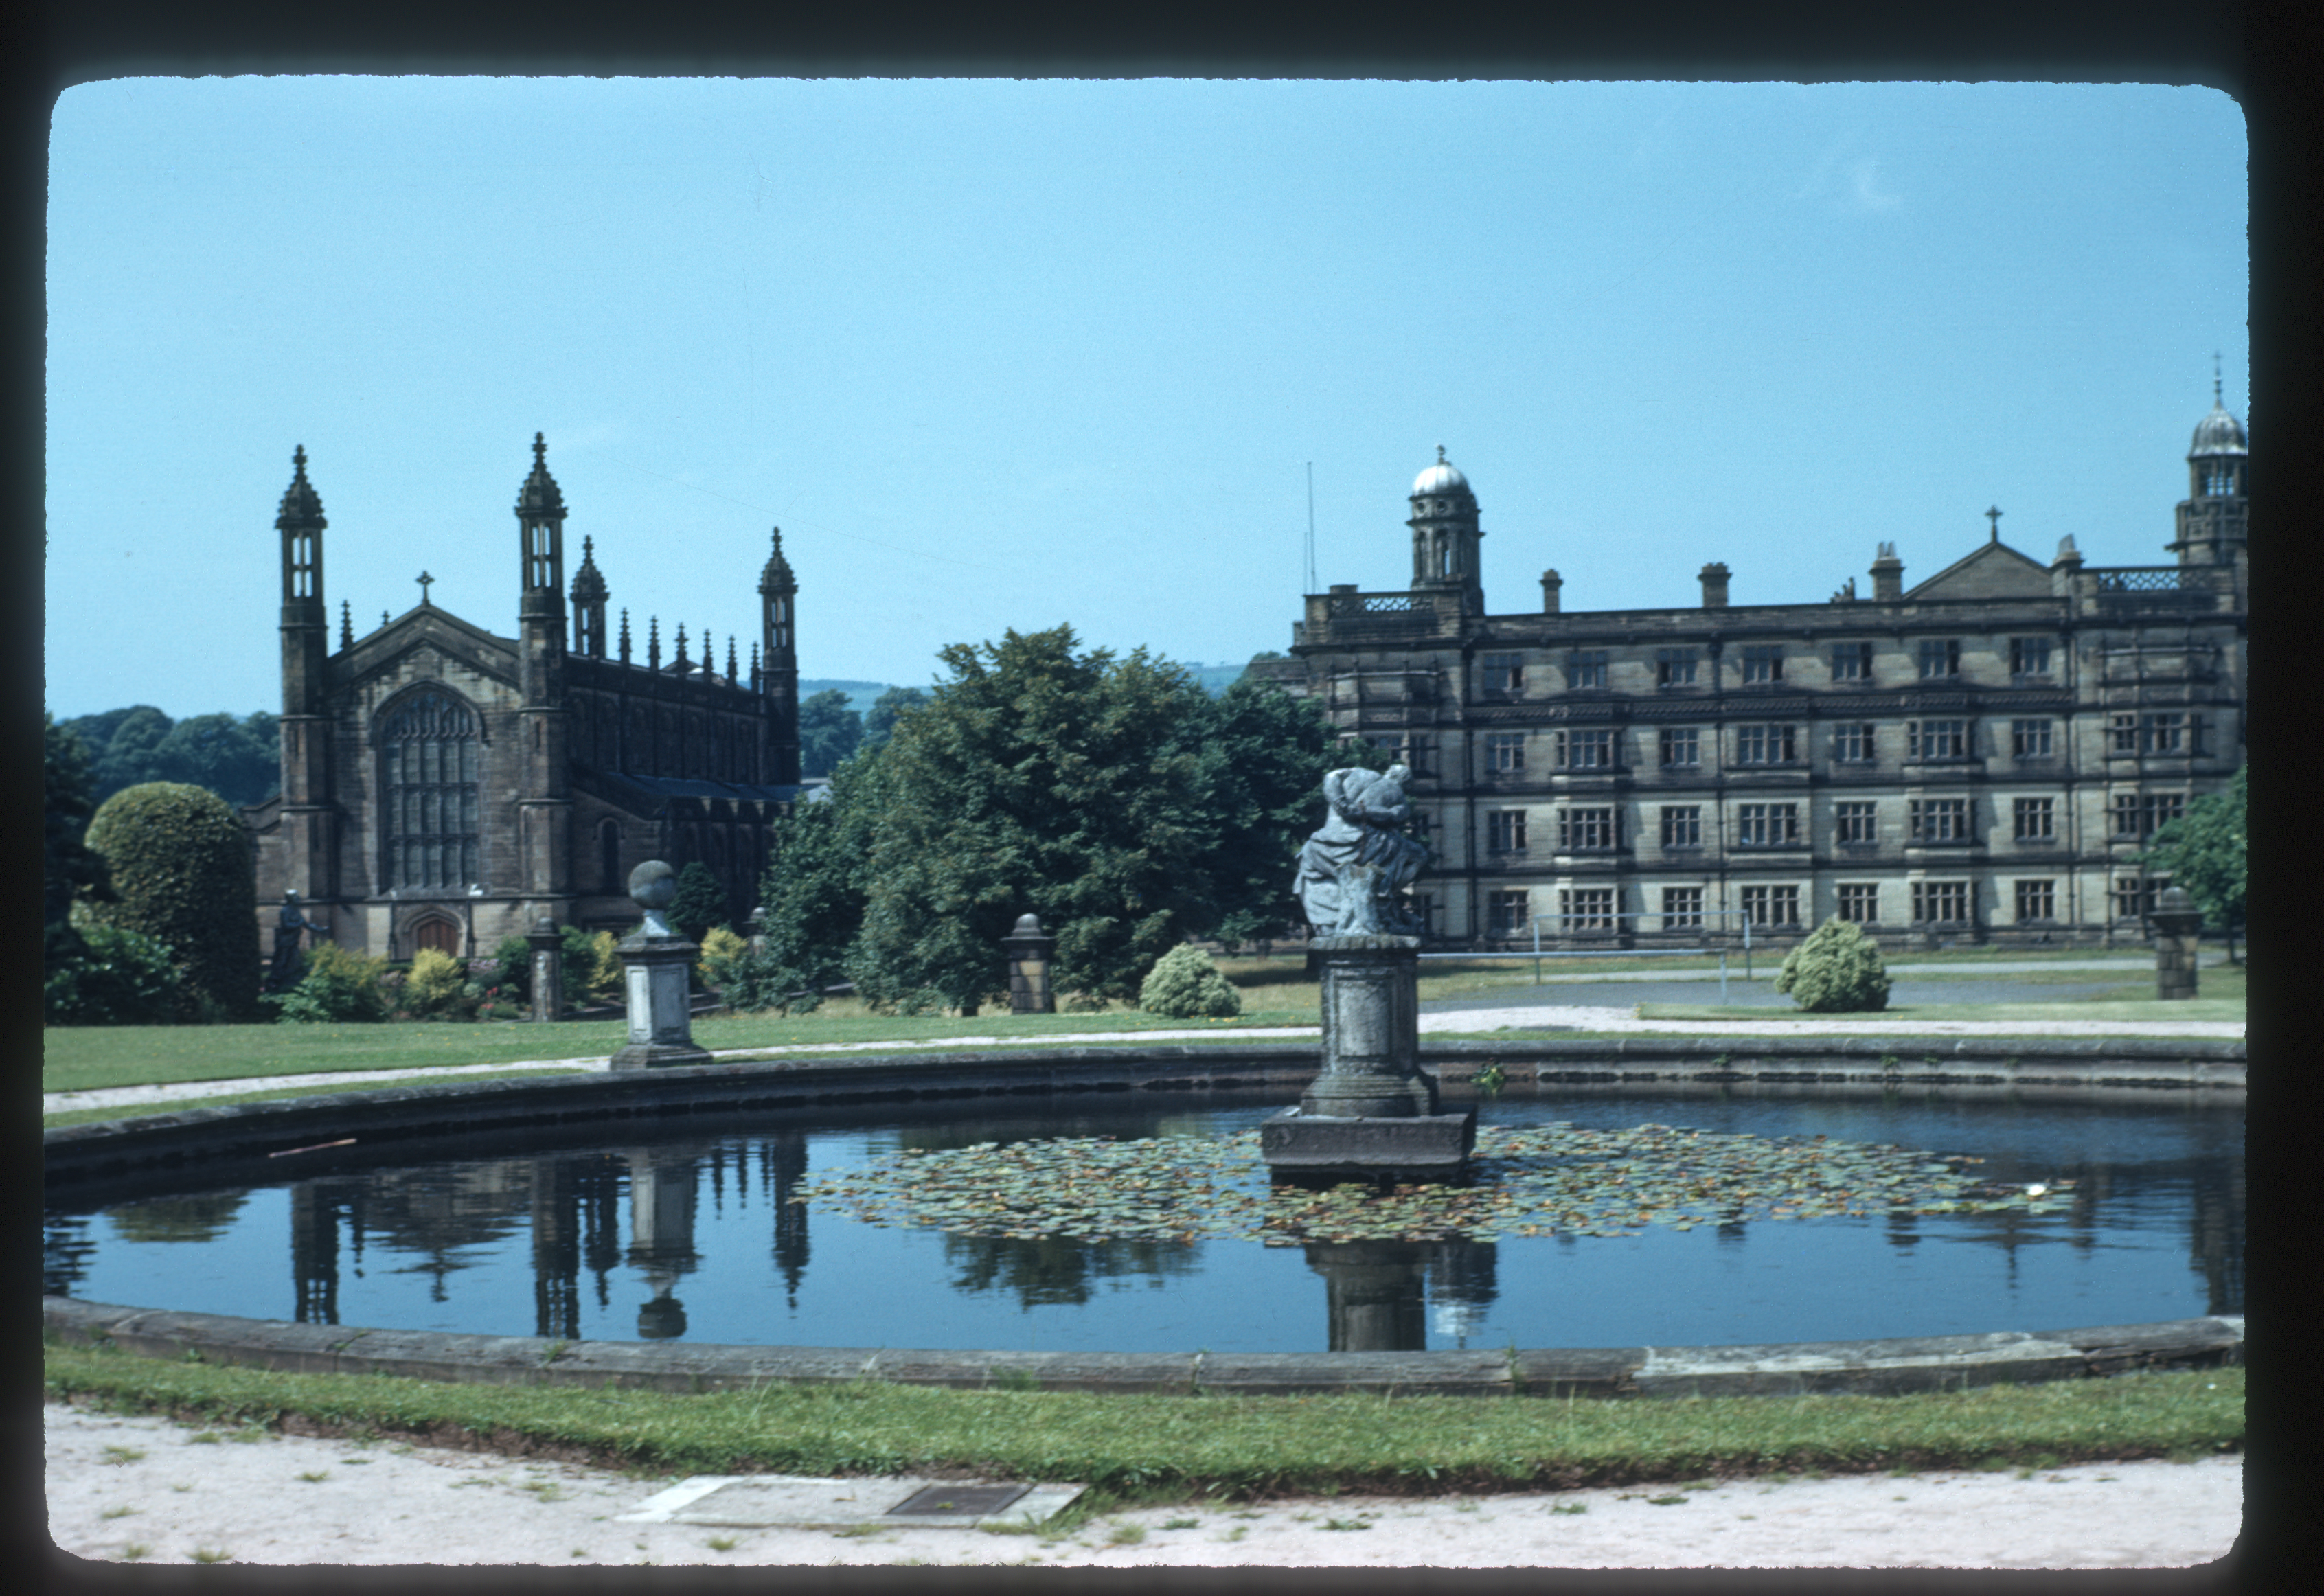 photograph of Stonyhurt buildings, including a fountain, a view of Hopkin's room from the outside, and the school chapel